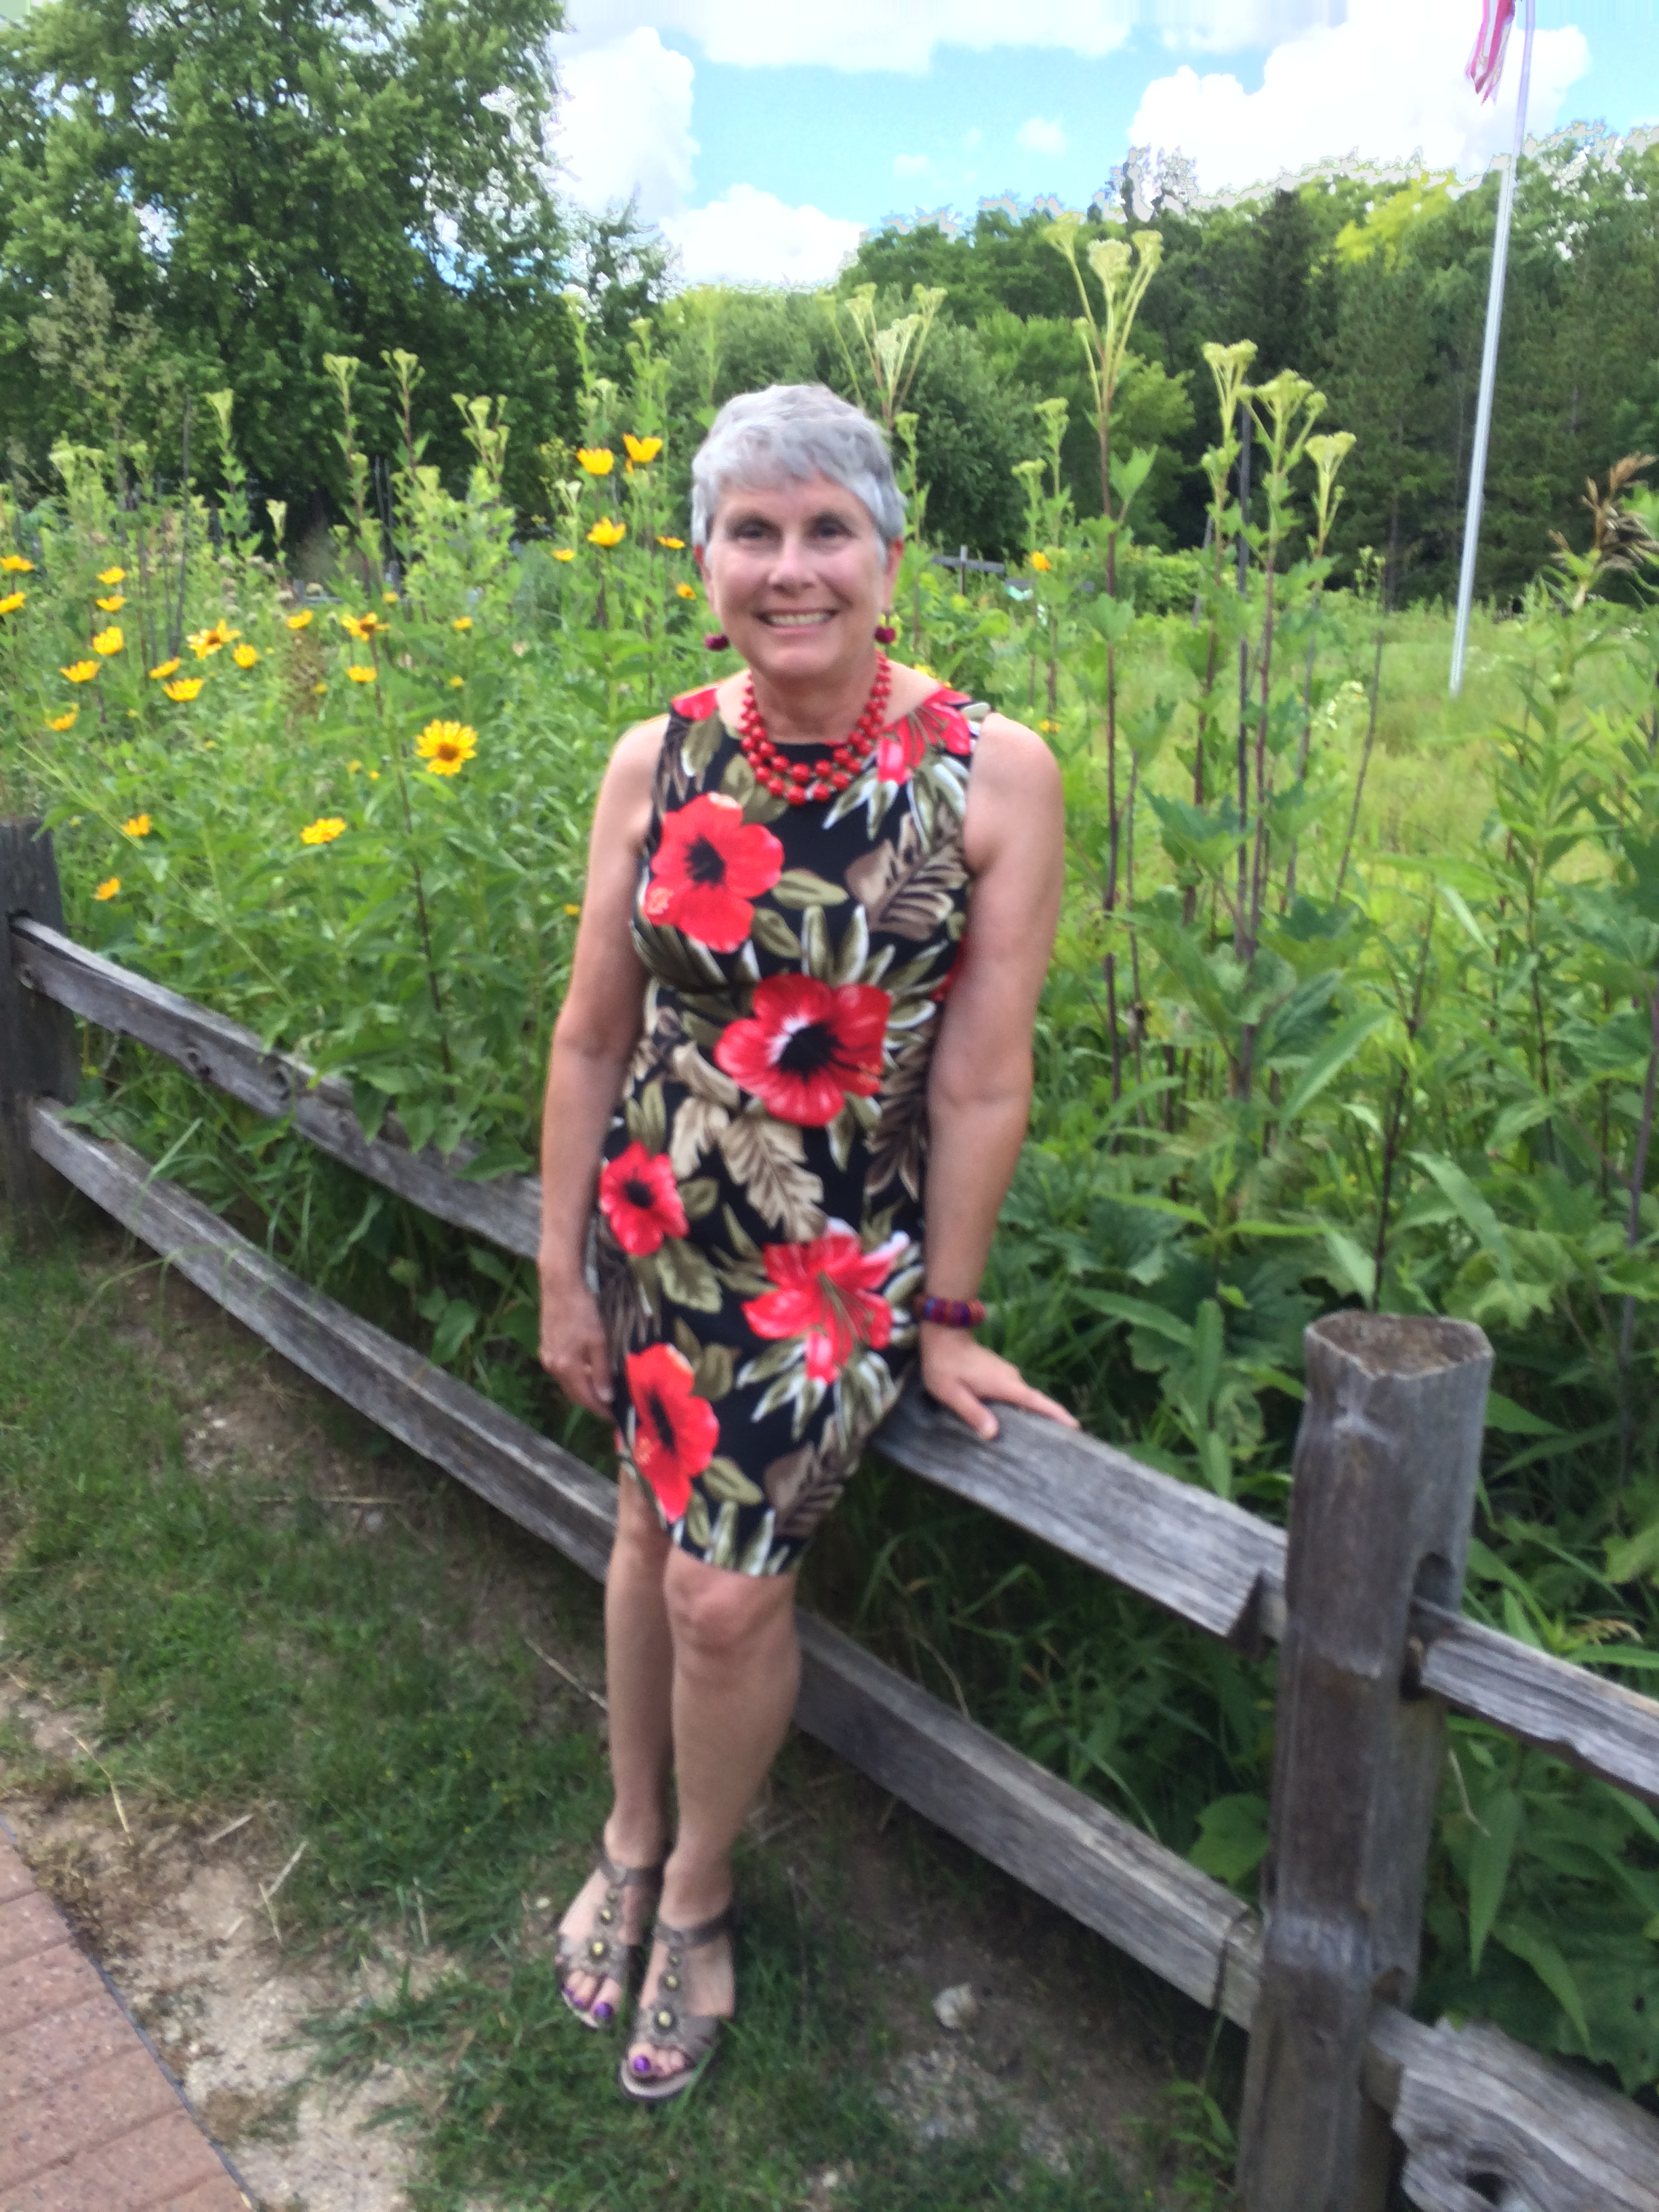 Jeanne Kollmeyer, September Artist-in-Residence at Cedarburg Cultural Center